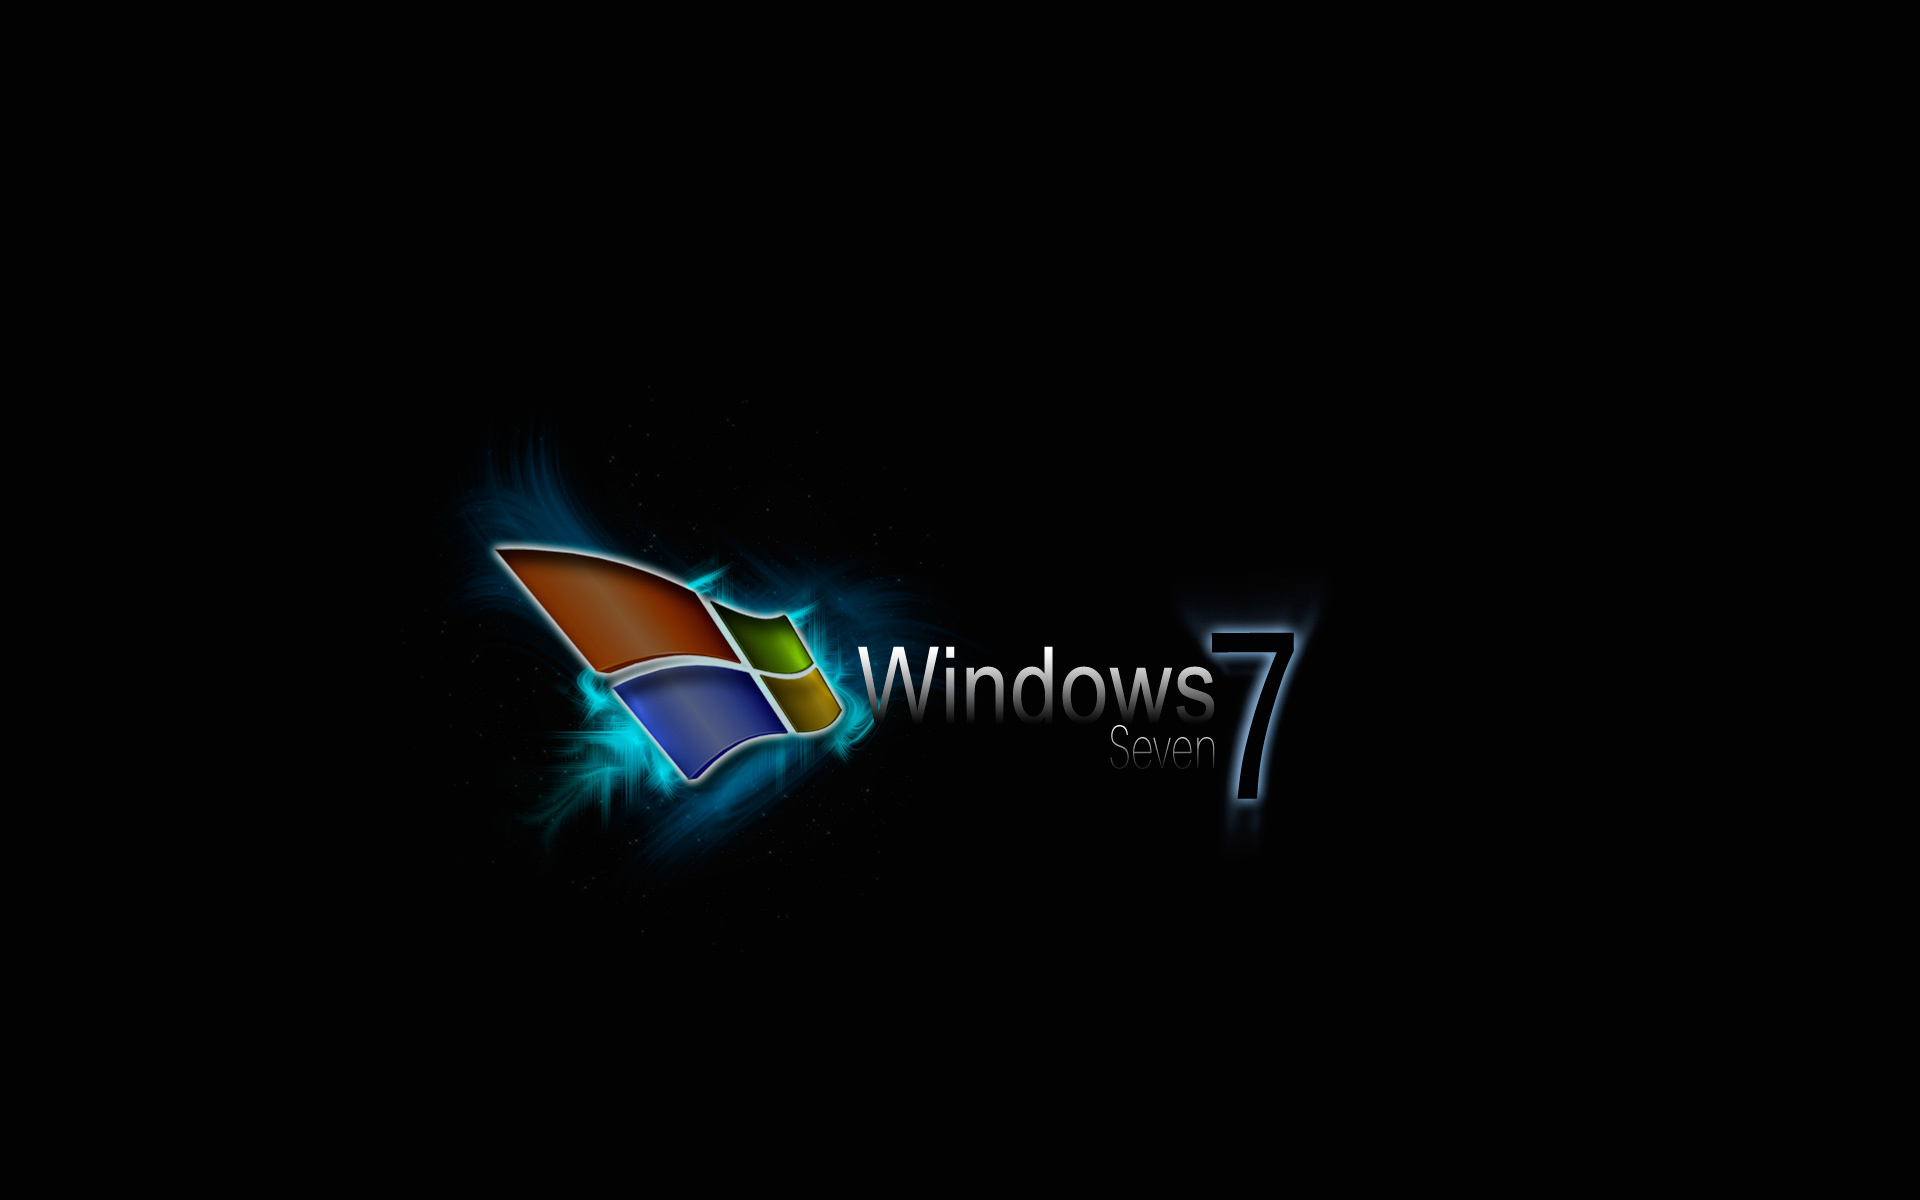 microsoft desktop backgrounds Hd microsoft desktop backgrounds 1920x1200